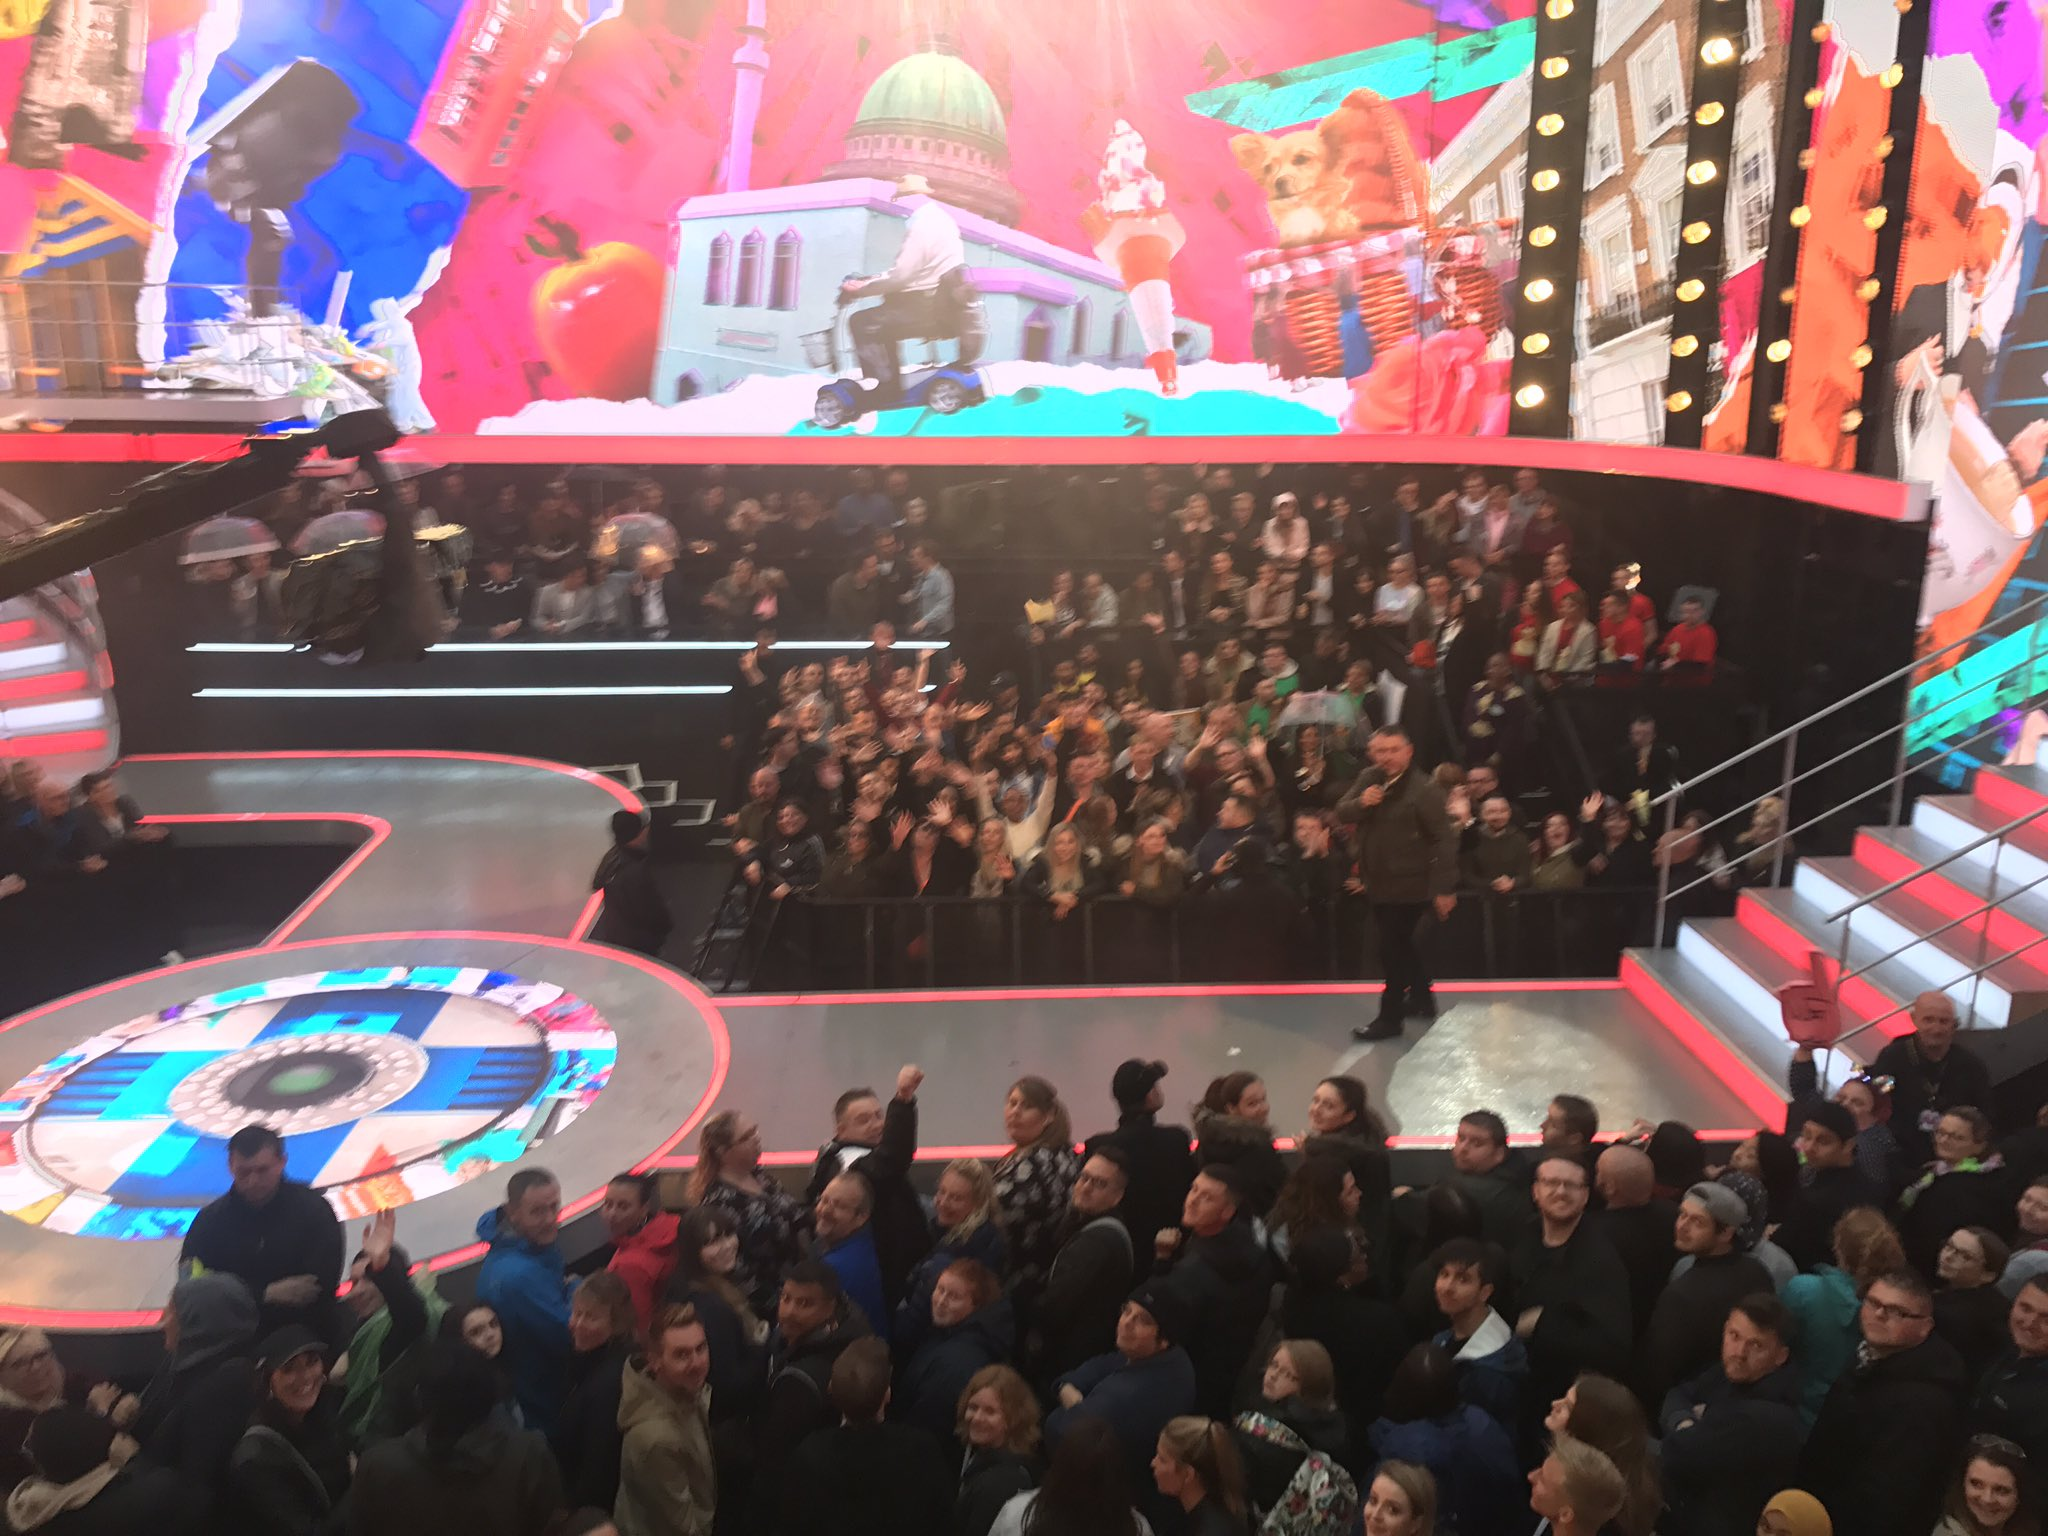 My view for this evening @bbuk https://t.co/0VyV0ZU8PC